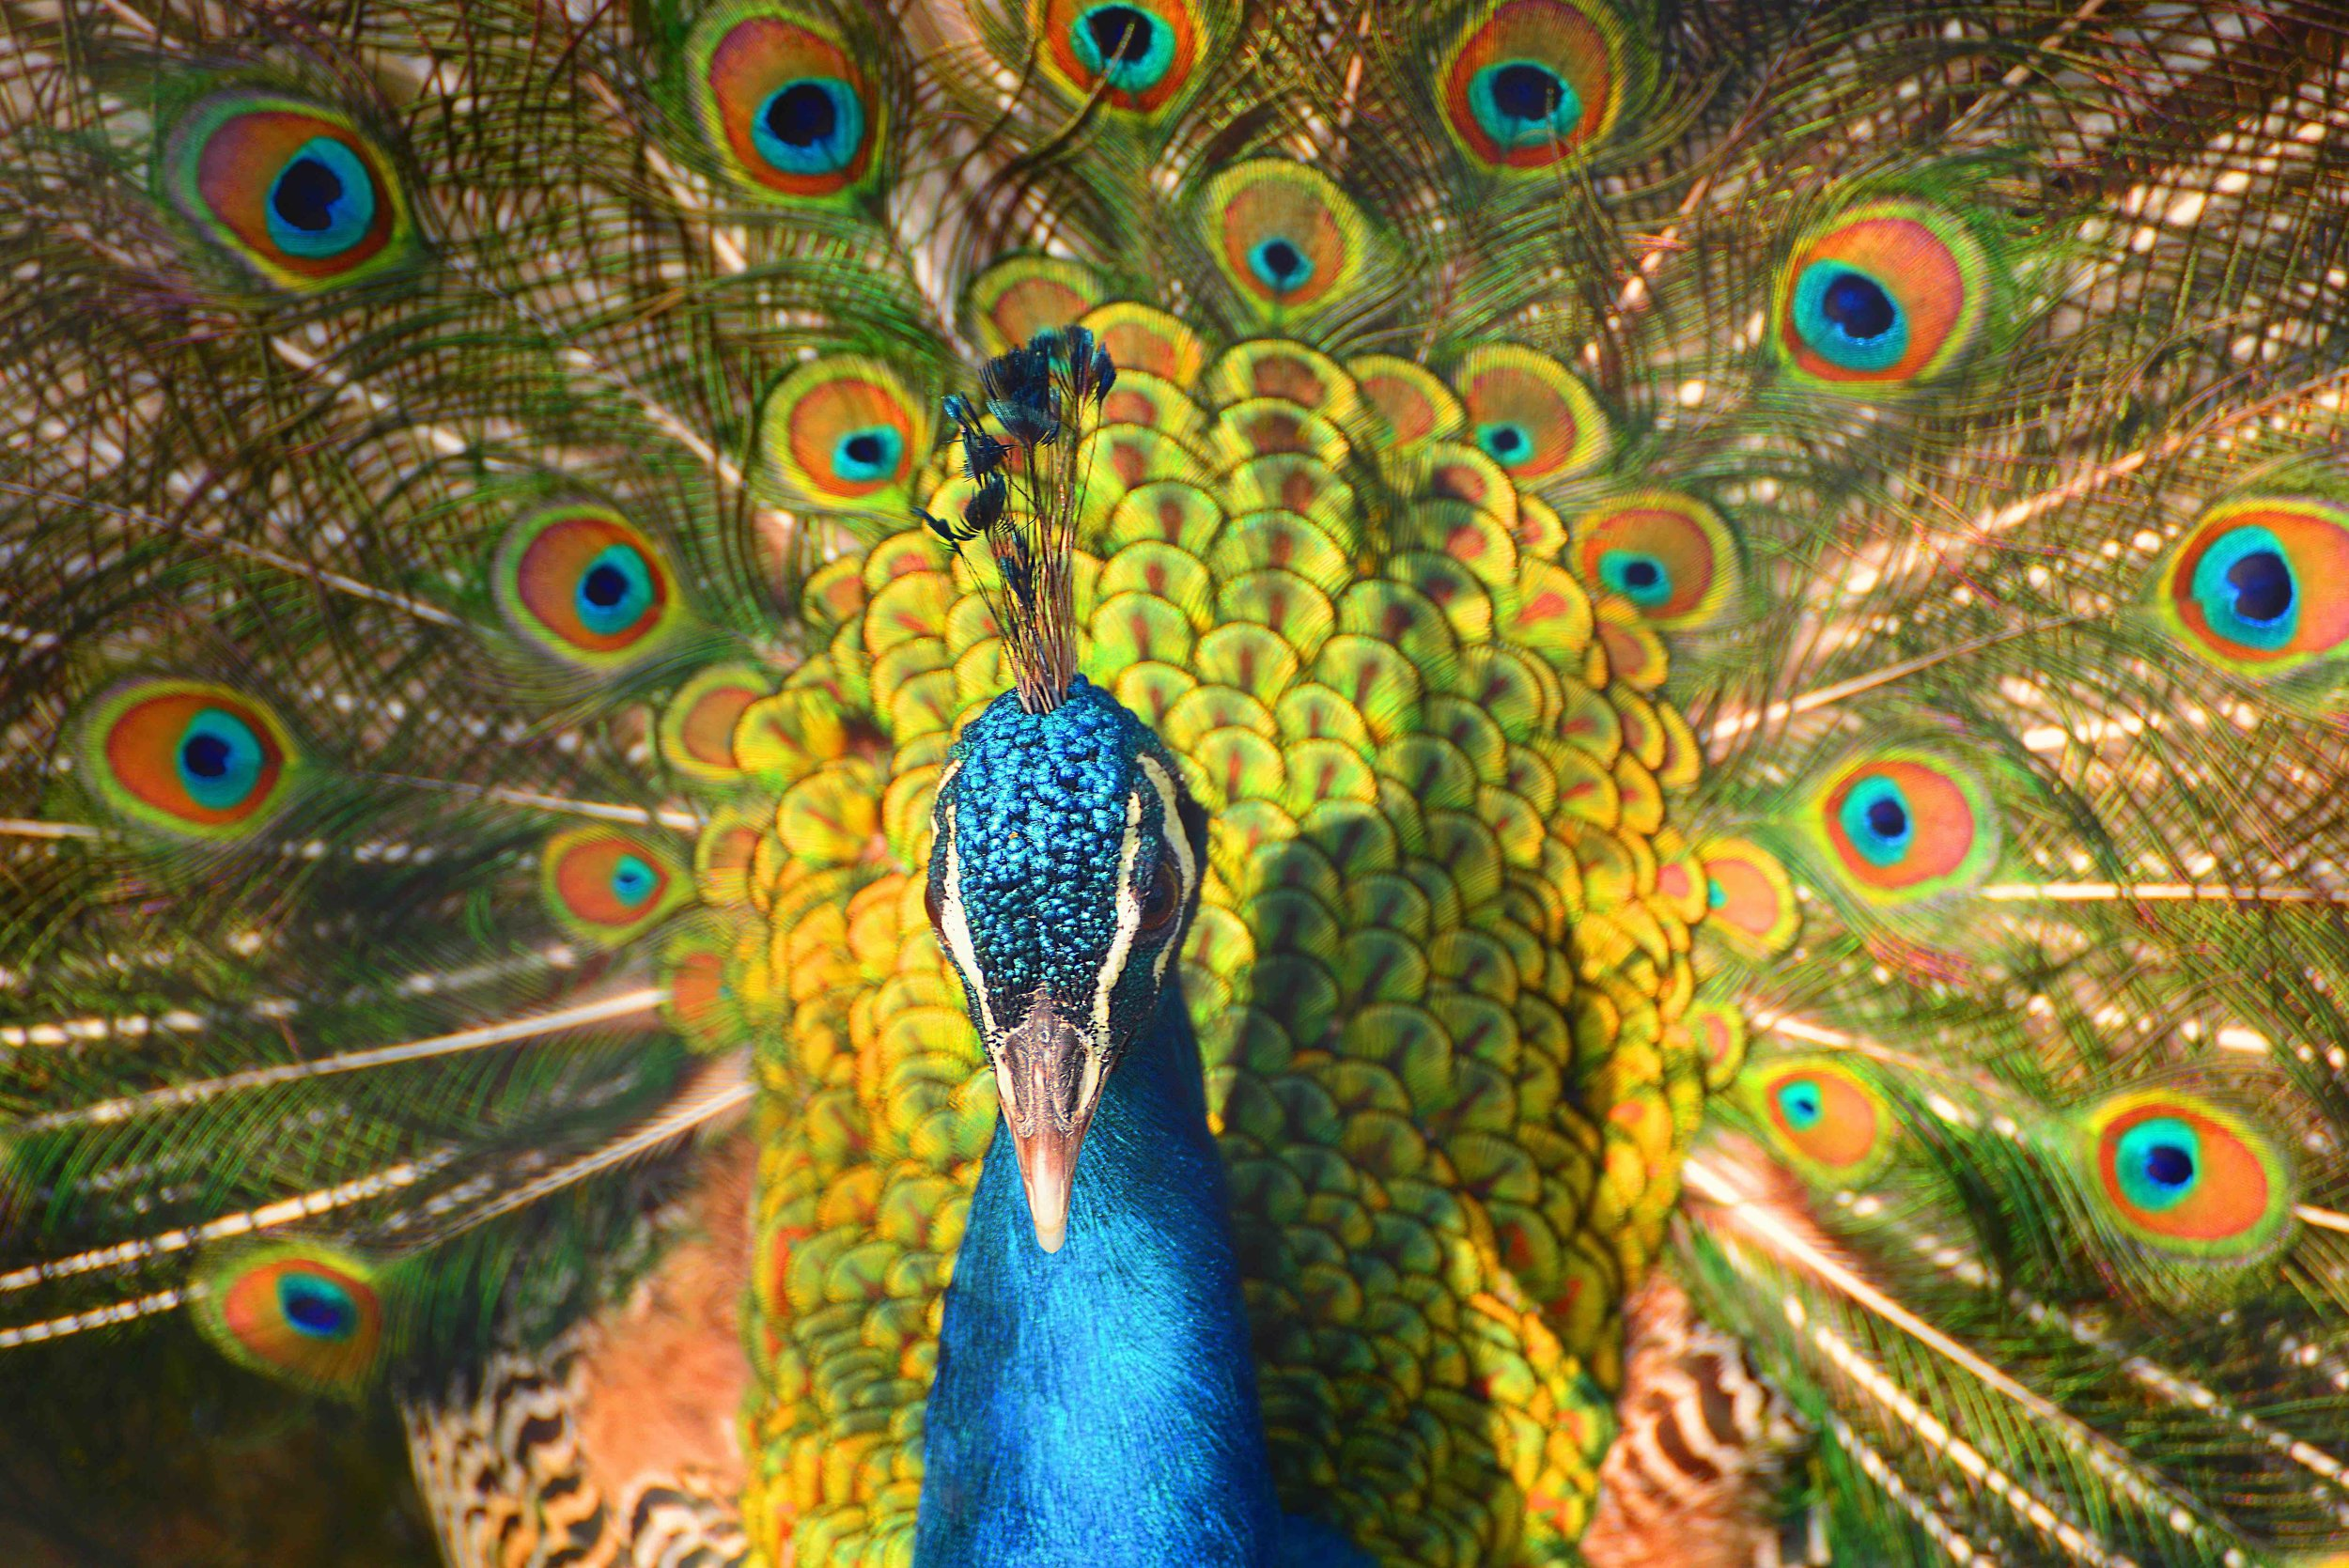 invite-to-paradise-sri-lanka-specialists-experts-travel-agent-tour-operator- 446996863 - peacock from Srilanka, Asia-reduced.jpg